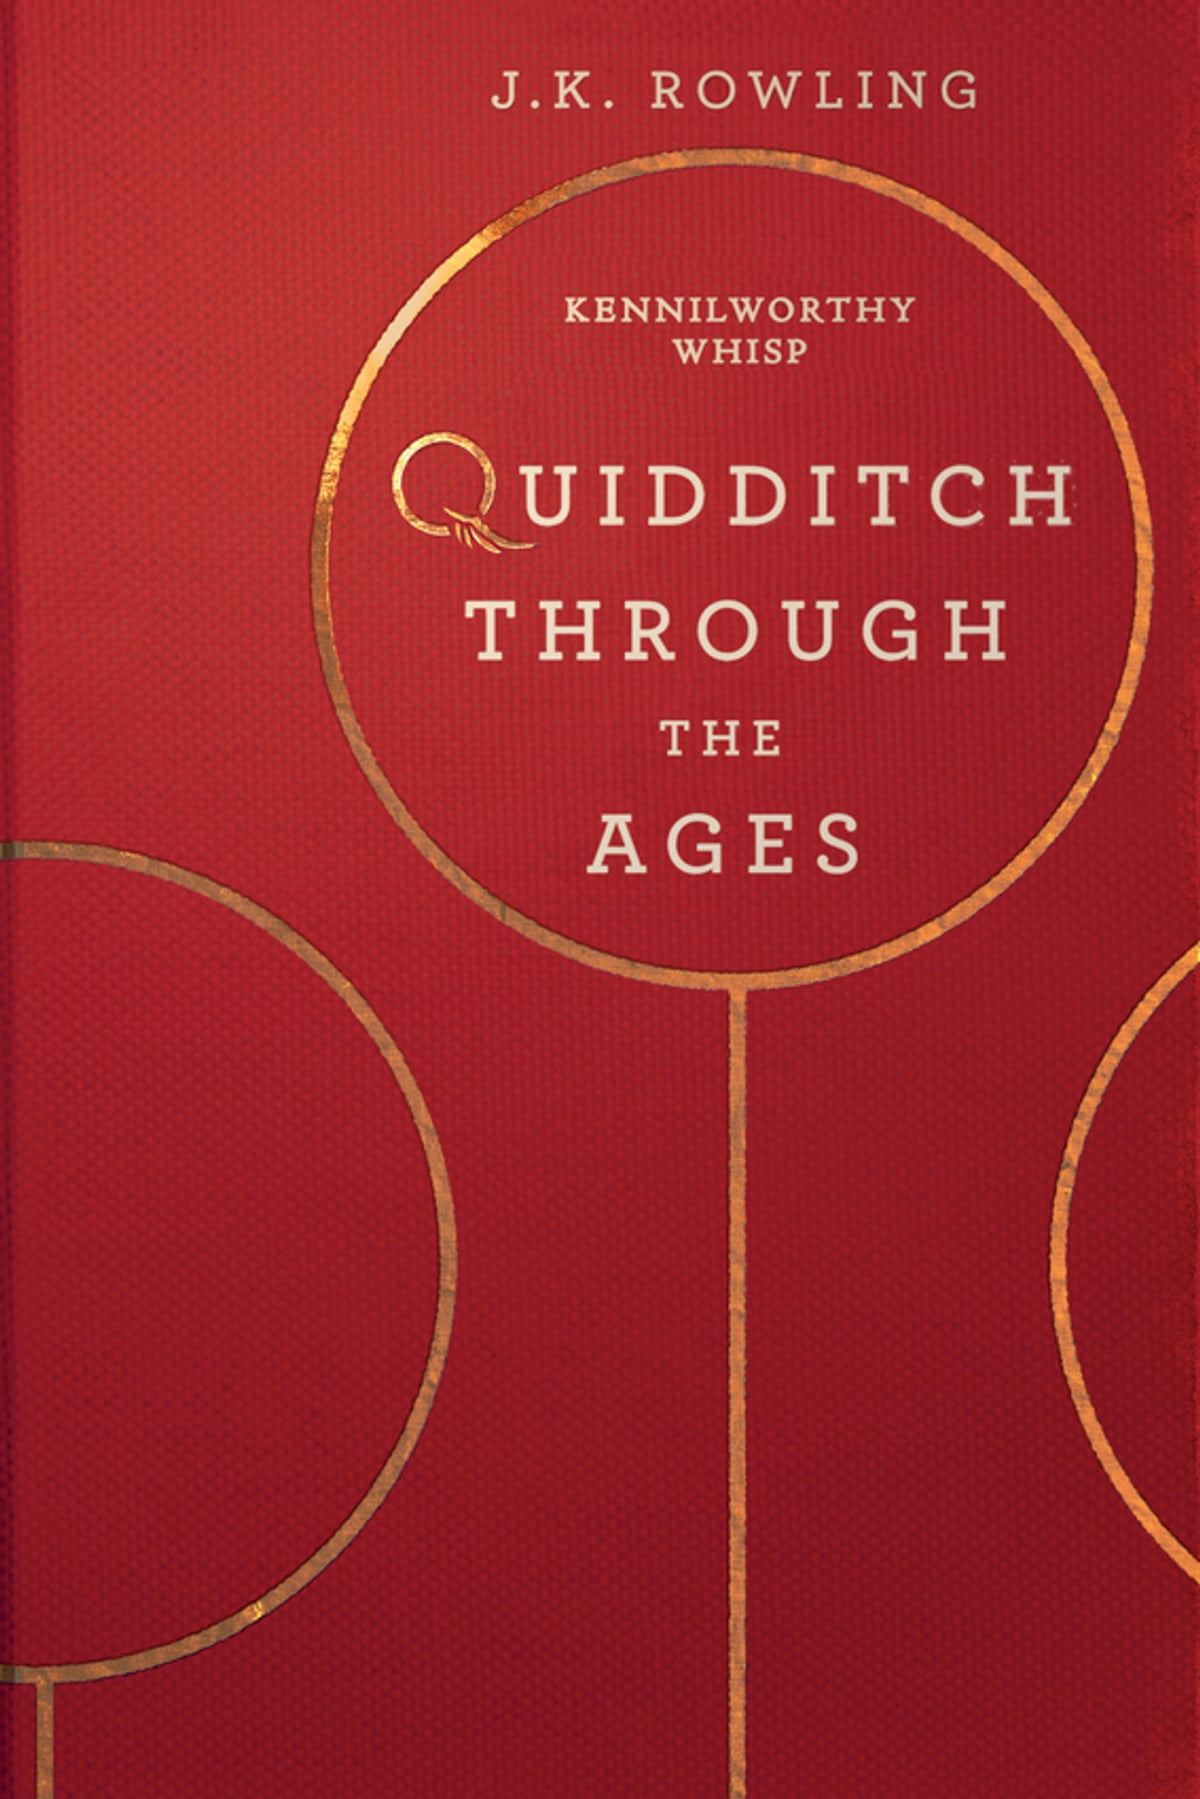 Quidditch Through the Ages eBook by J.K. Rowling - 9781781106747 | Rakuten  Kobo